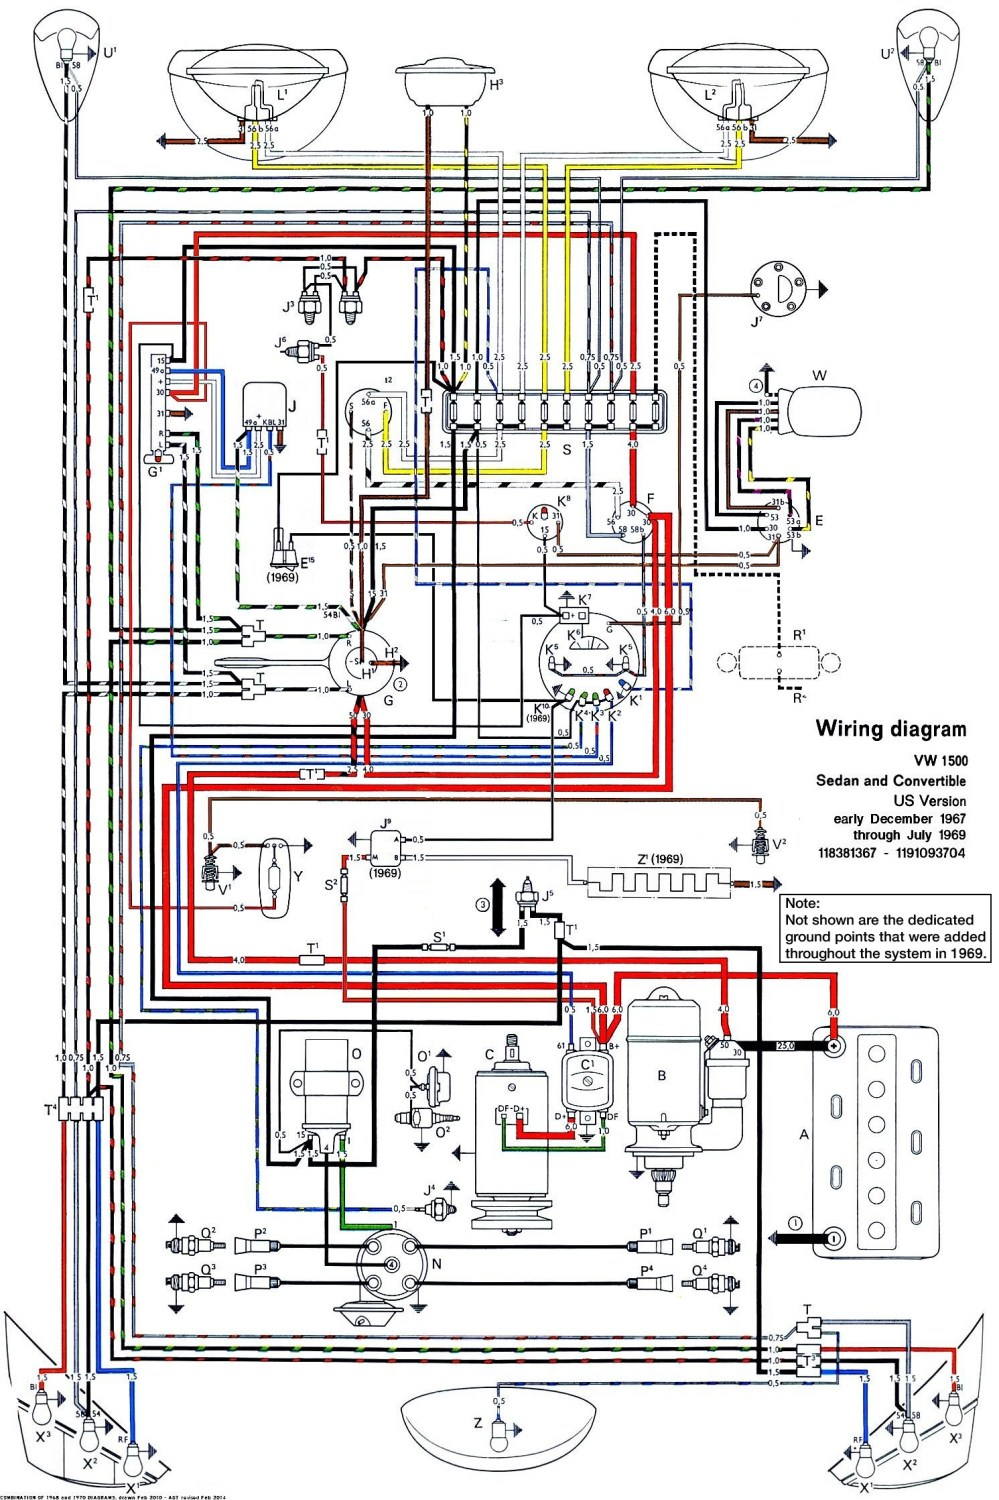 medium resolution of wiring diagram for 72 vw beetle wwwthesambacom vw forum http wwwthesambacom vw archives info wiring bughowtoread73upjpg